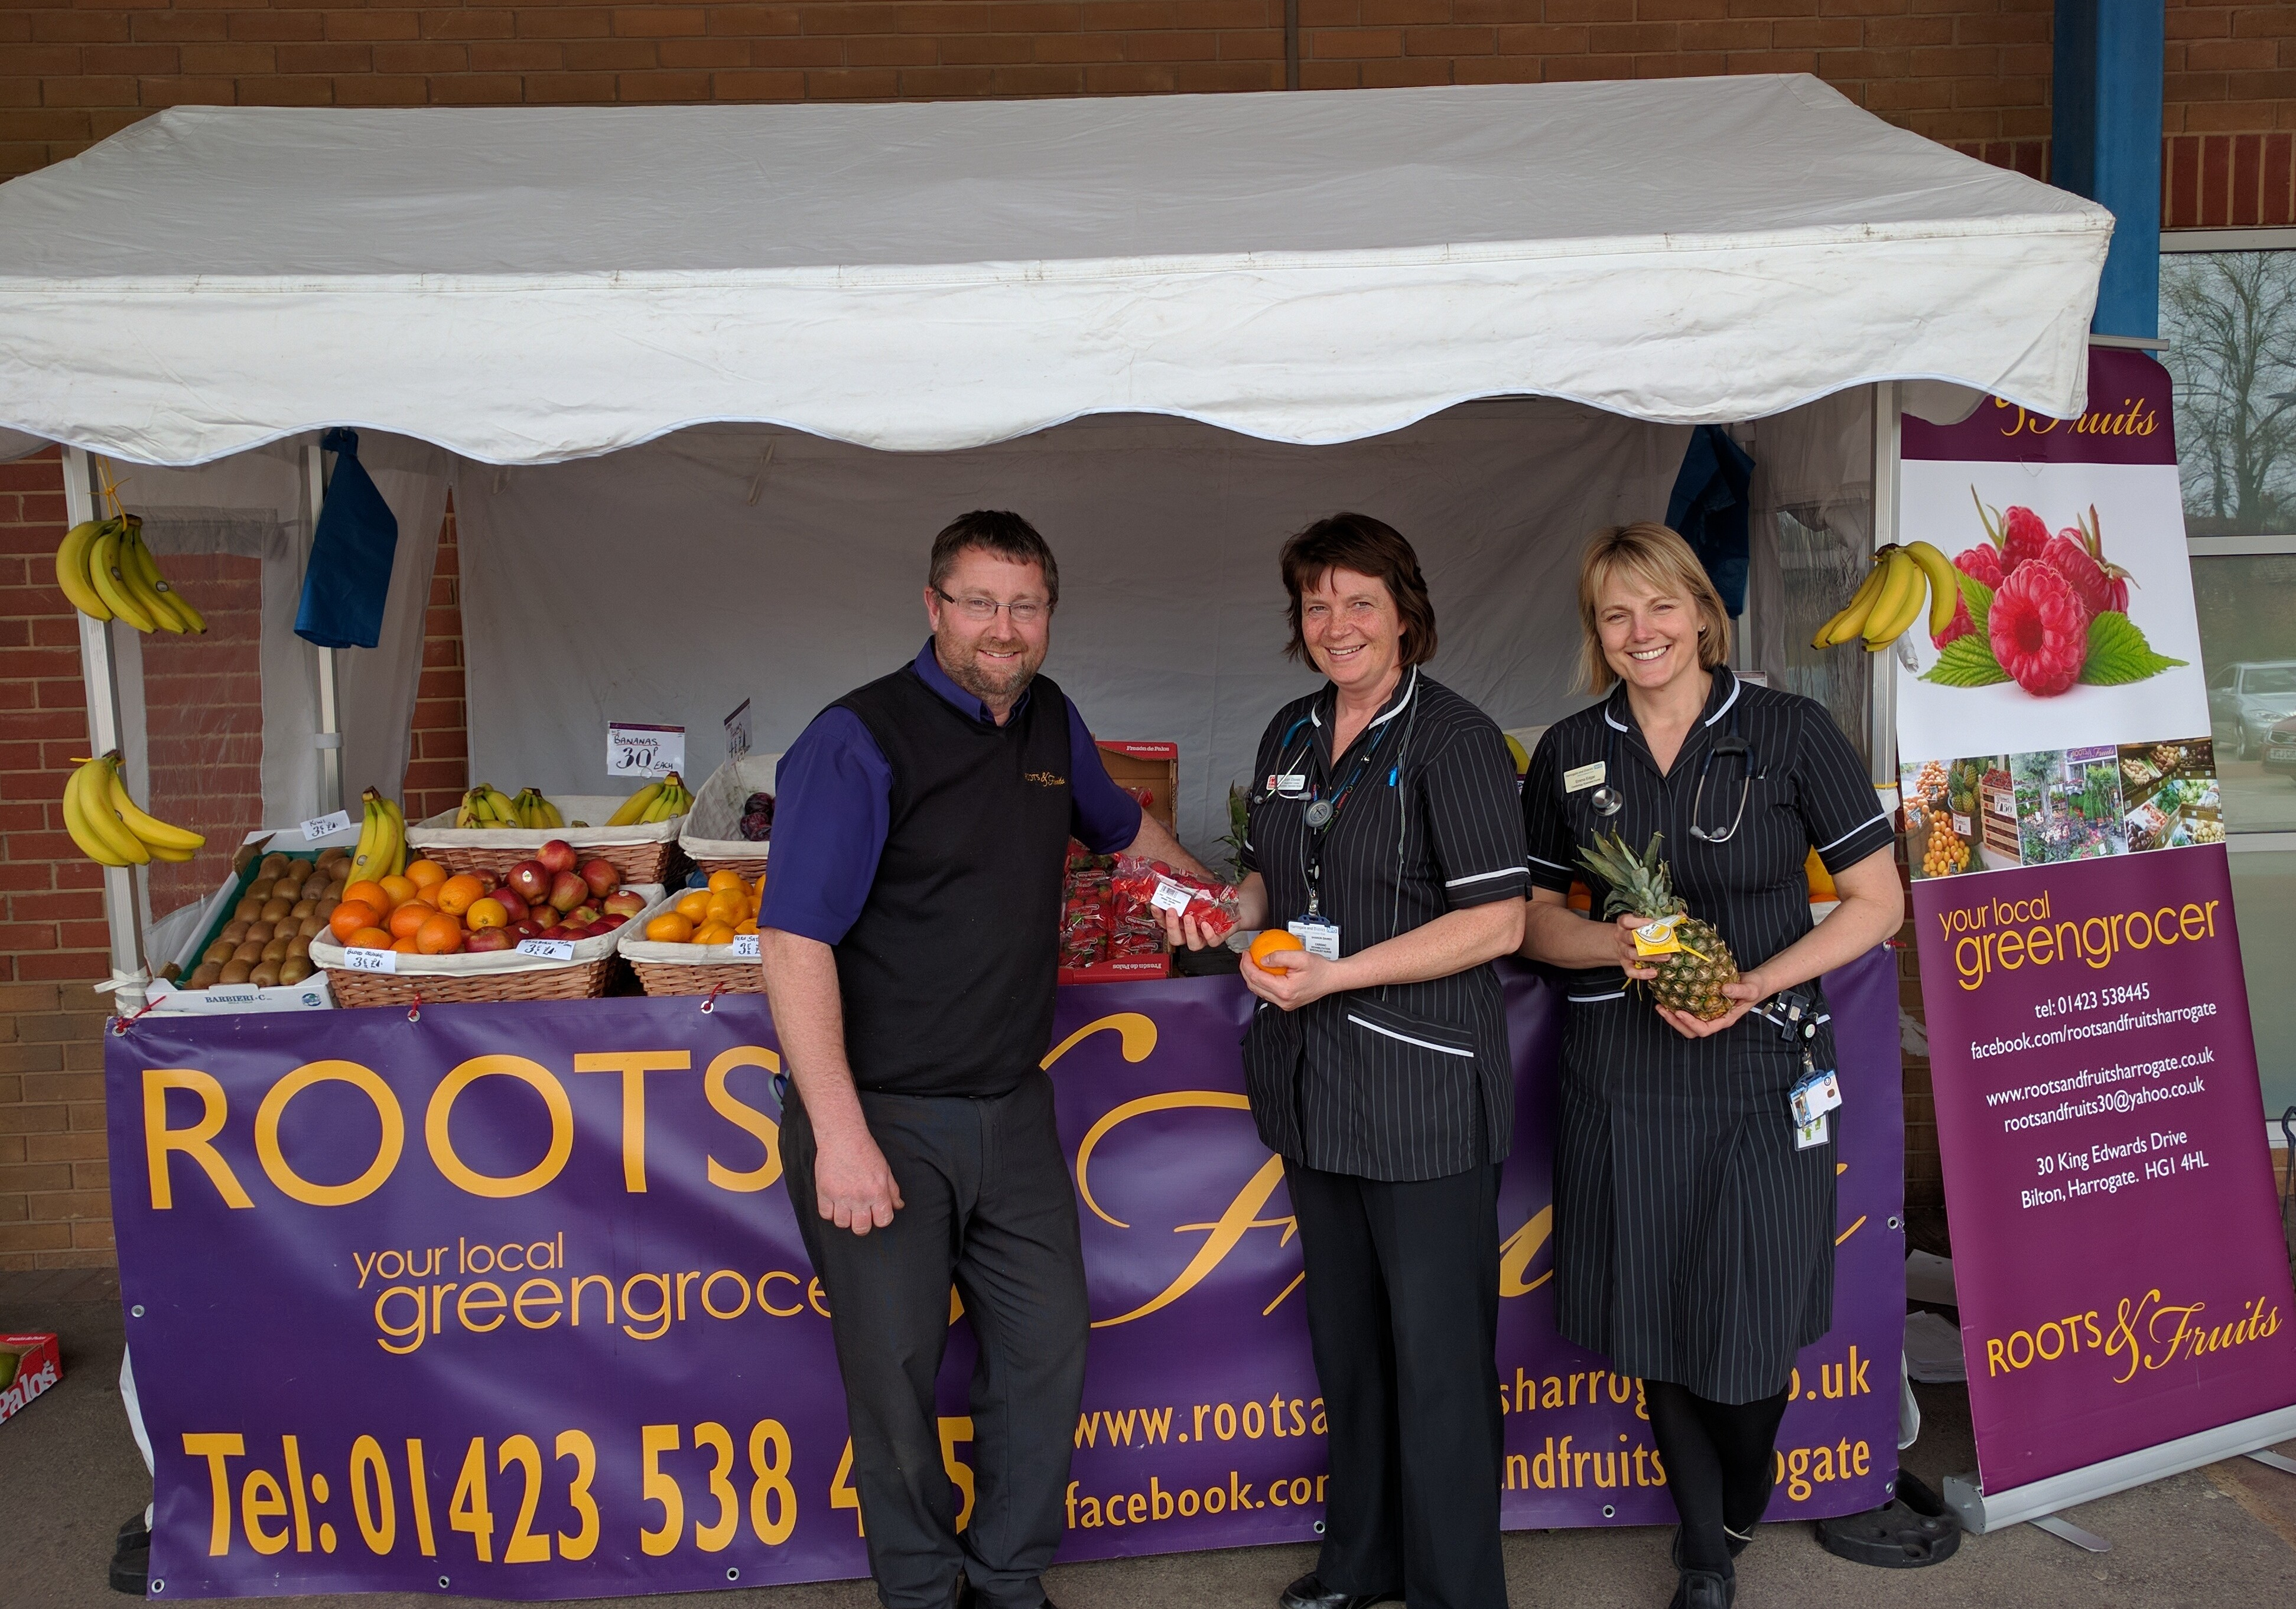 Roots and Fruits Julian, Sharon and Emma